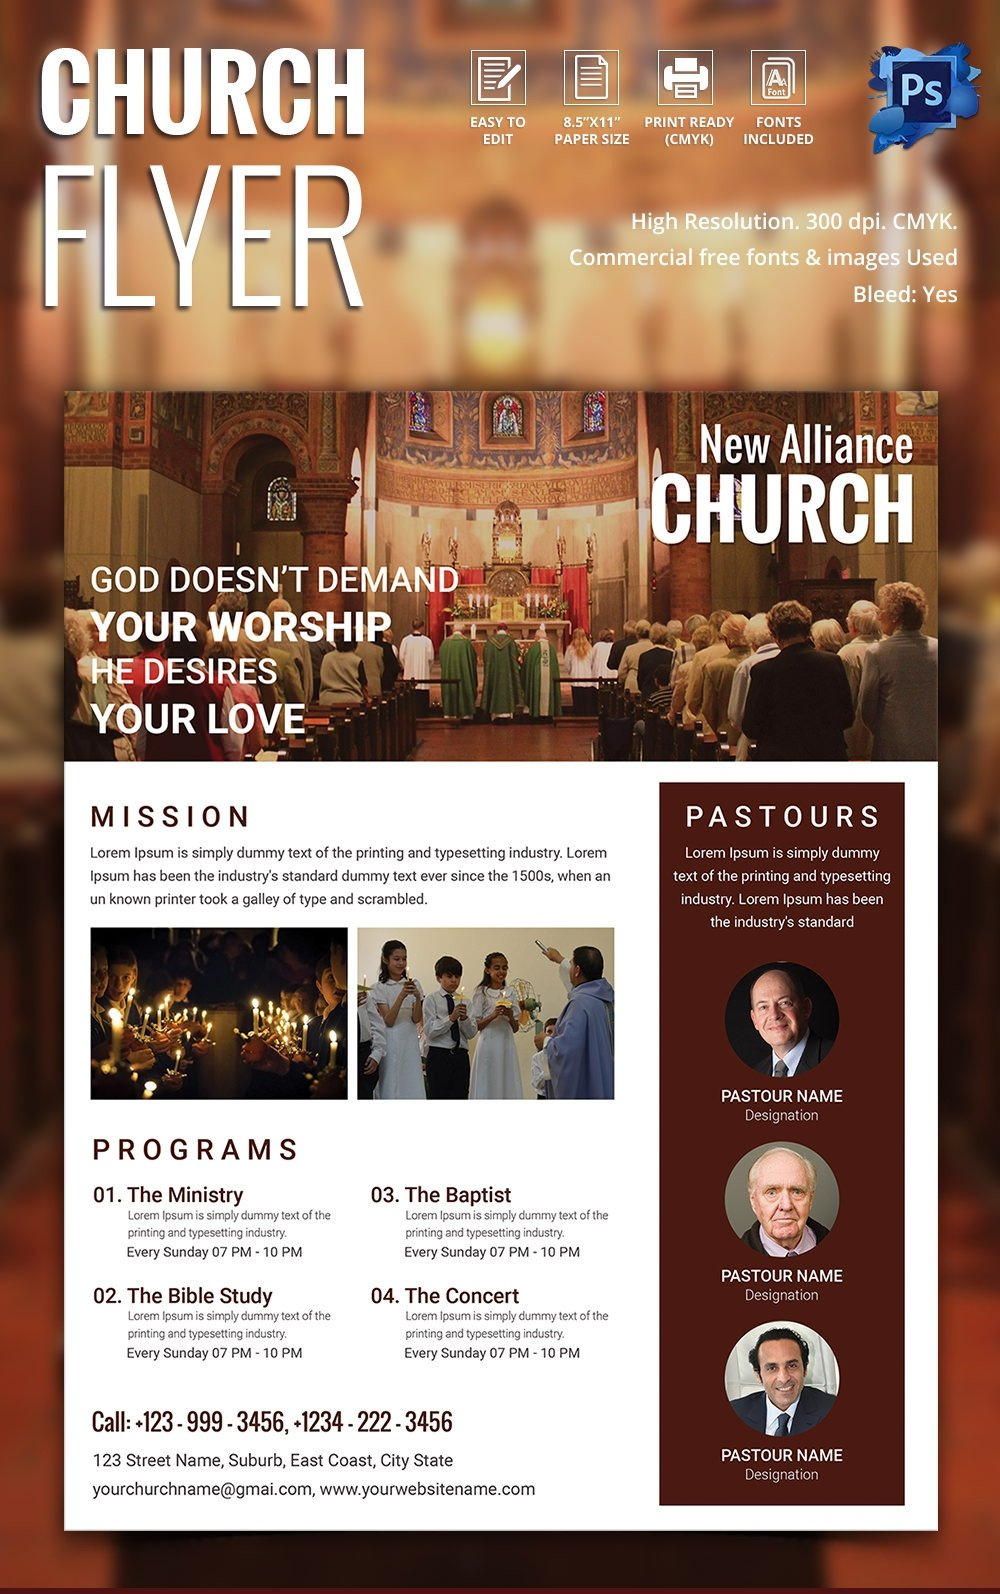 Church Flyers Templates Free Download 135 Psd Flyer Templates – Free Psd Eps Ai Indesign